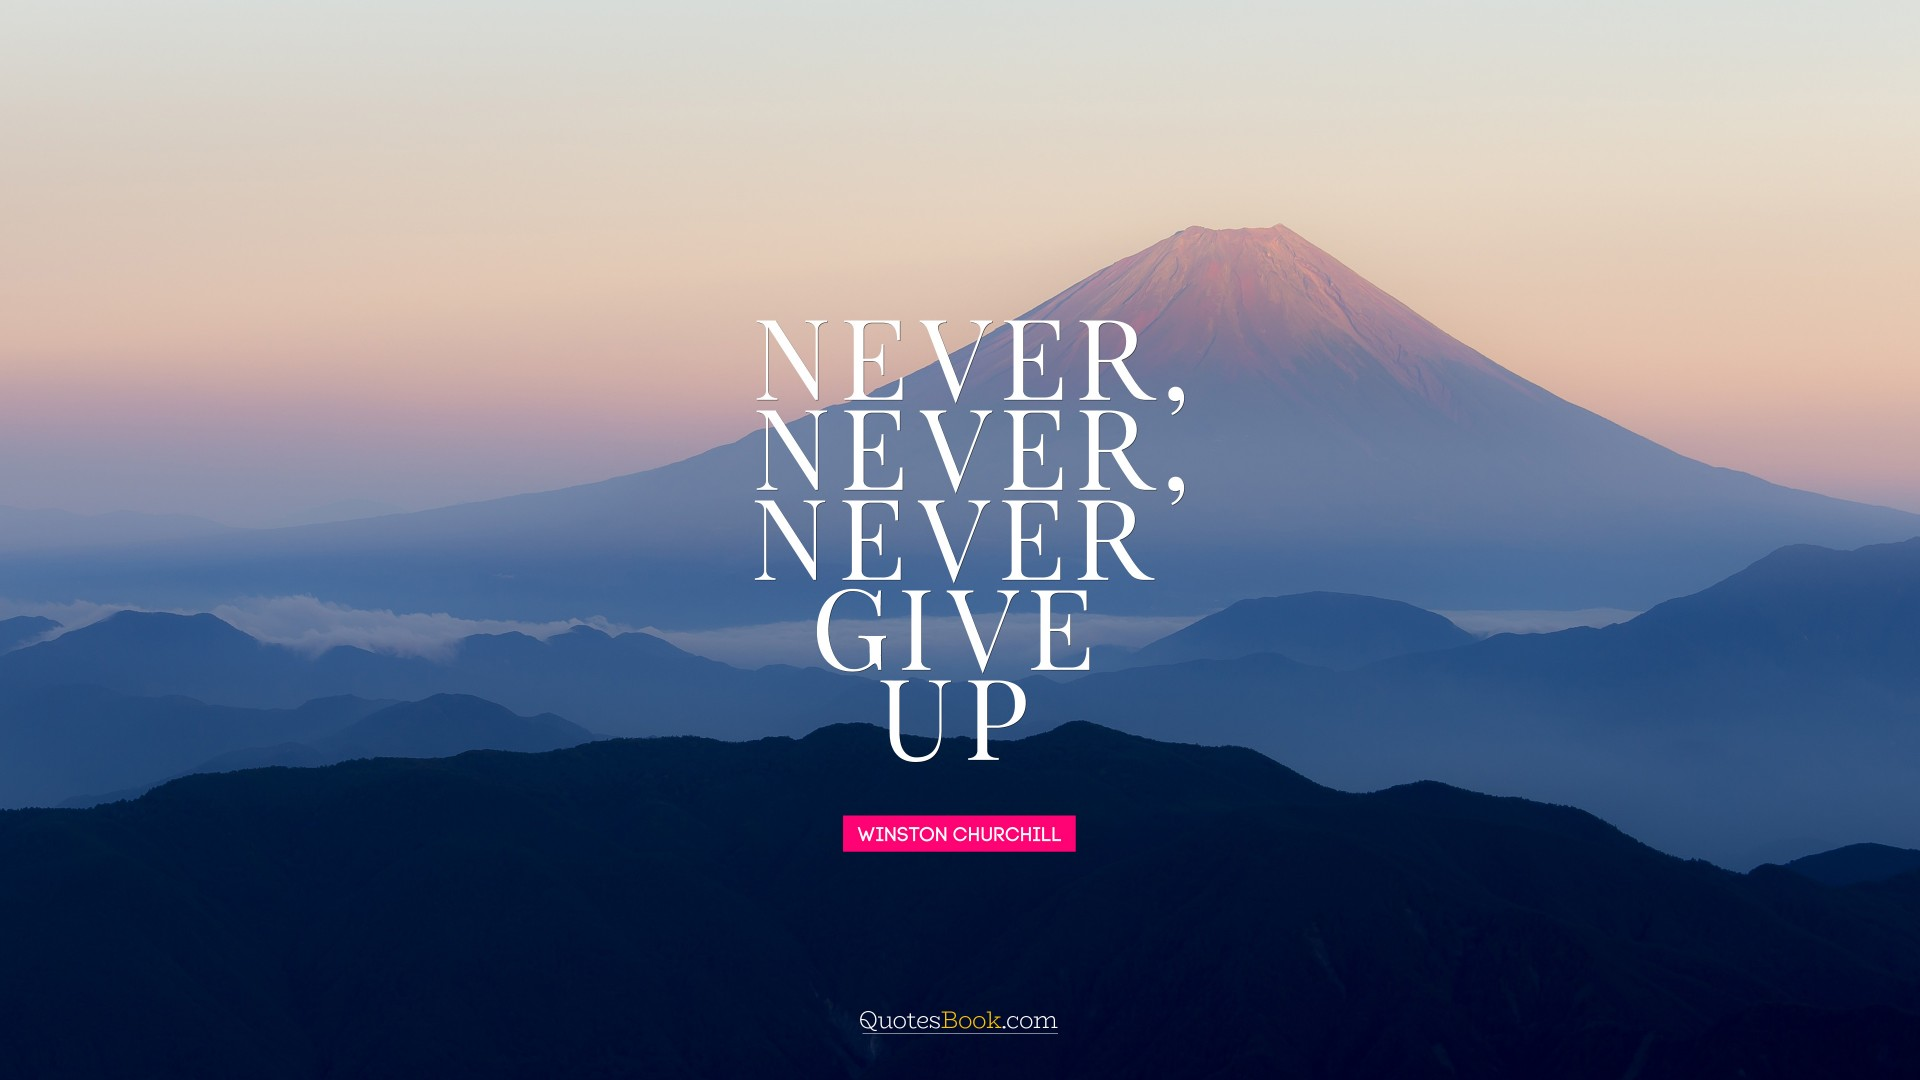 Never, never, never give up. - Quote by Winston Churchill